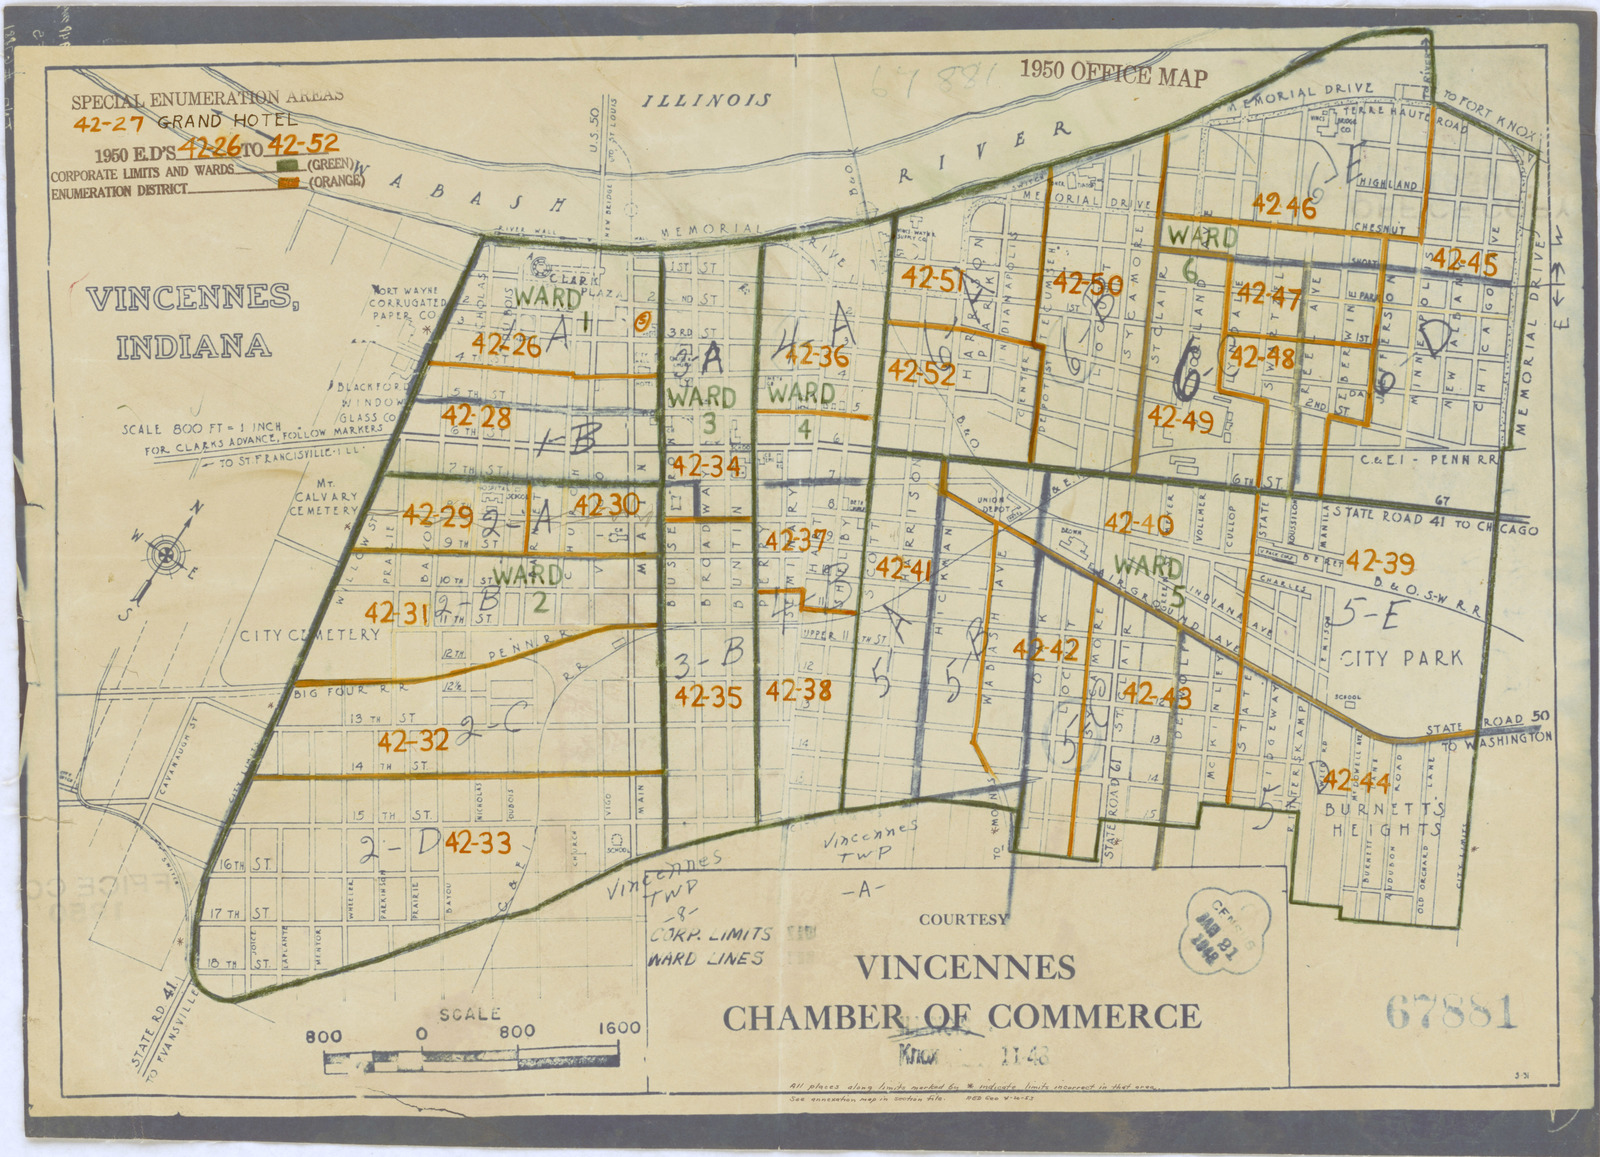 Knox County Indiana Map.1950 Census Enumeration District Maps Indiana In Knox County